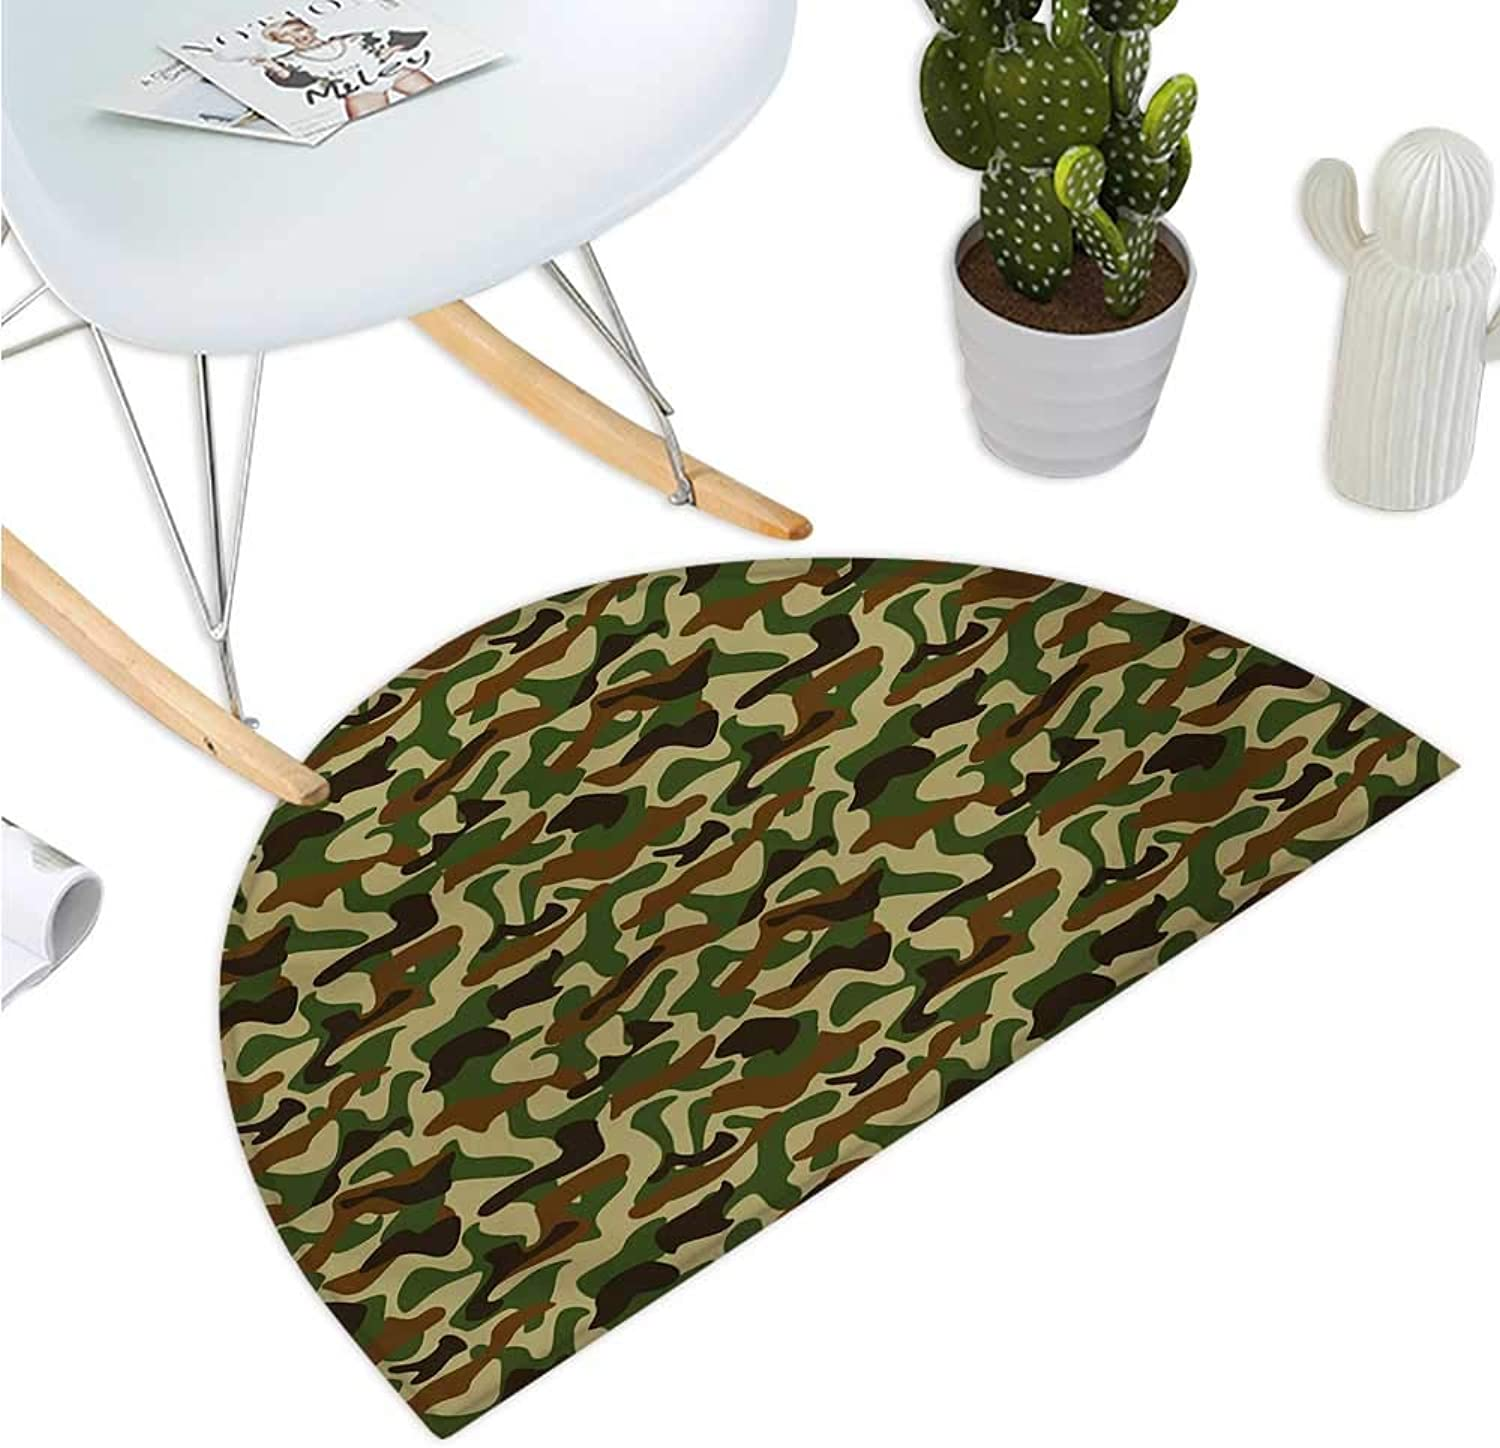 Camouflage Semicircular Cushion Squad Uniform Design with Vivid color Scheme Hunting Camouflage Pattern Halfmoon doormats H 39.3  xD 59  Green Brown Khaki